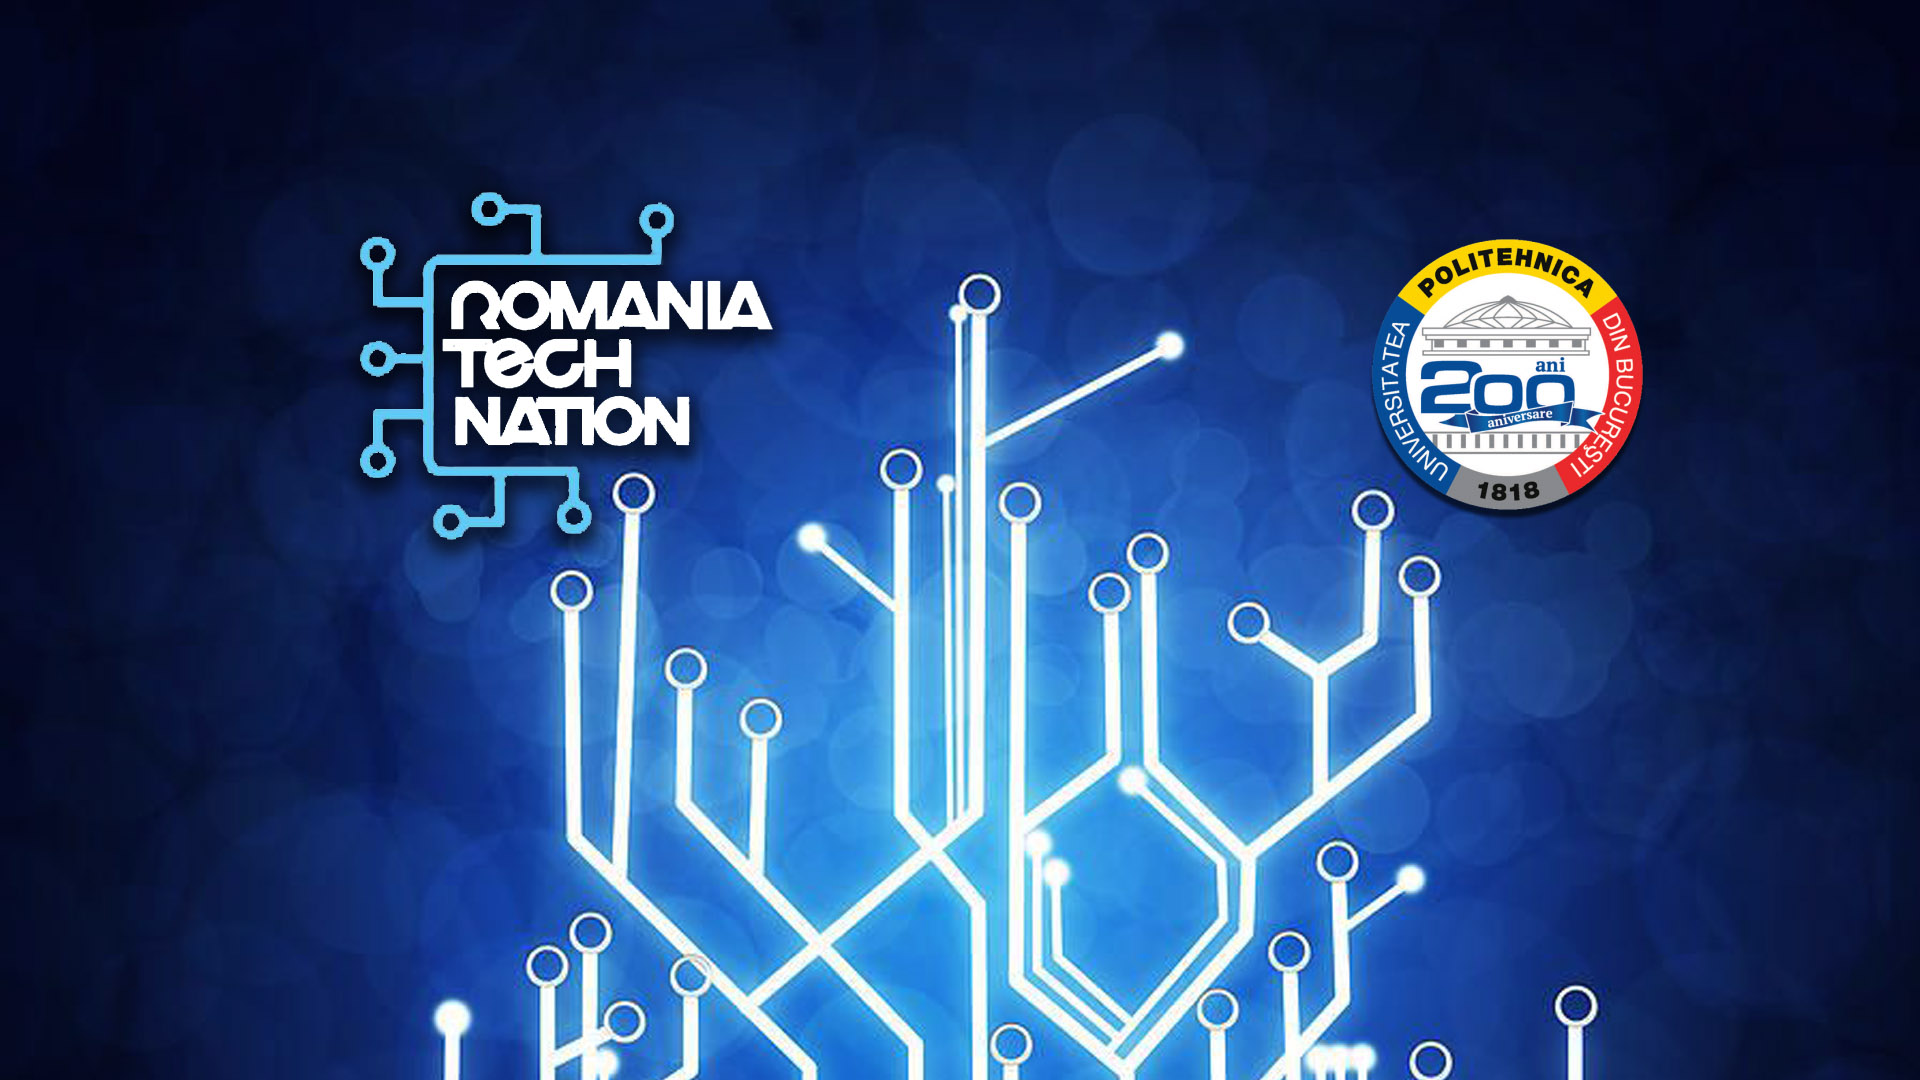 upb Lansare oficiala Romania Tech Nation